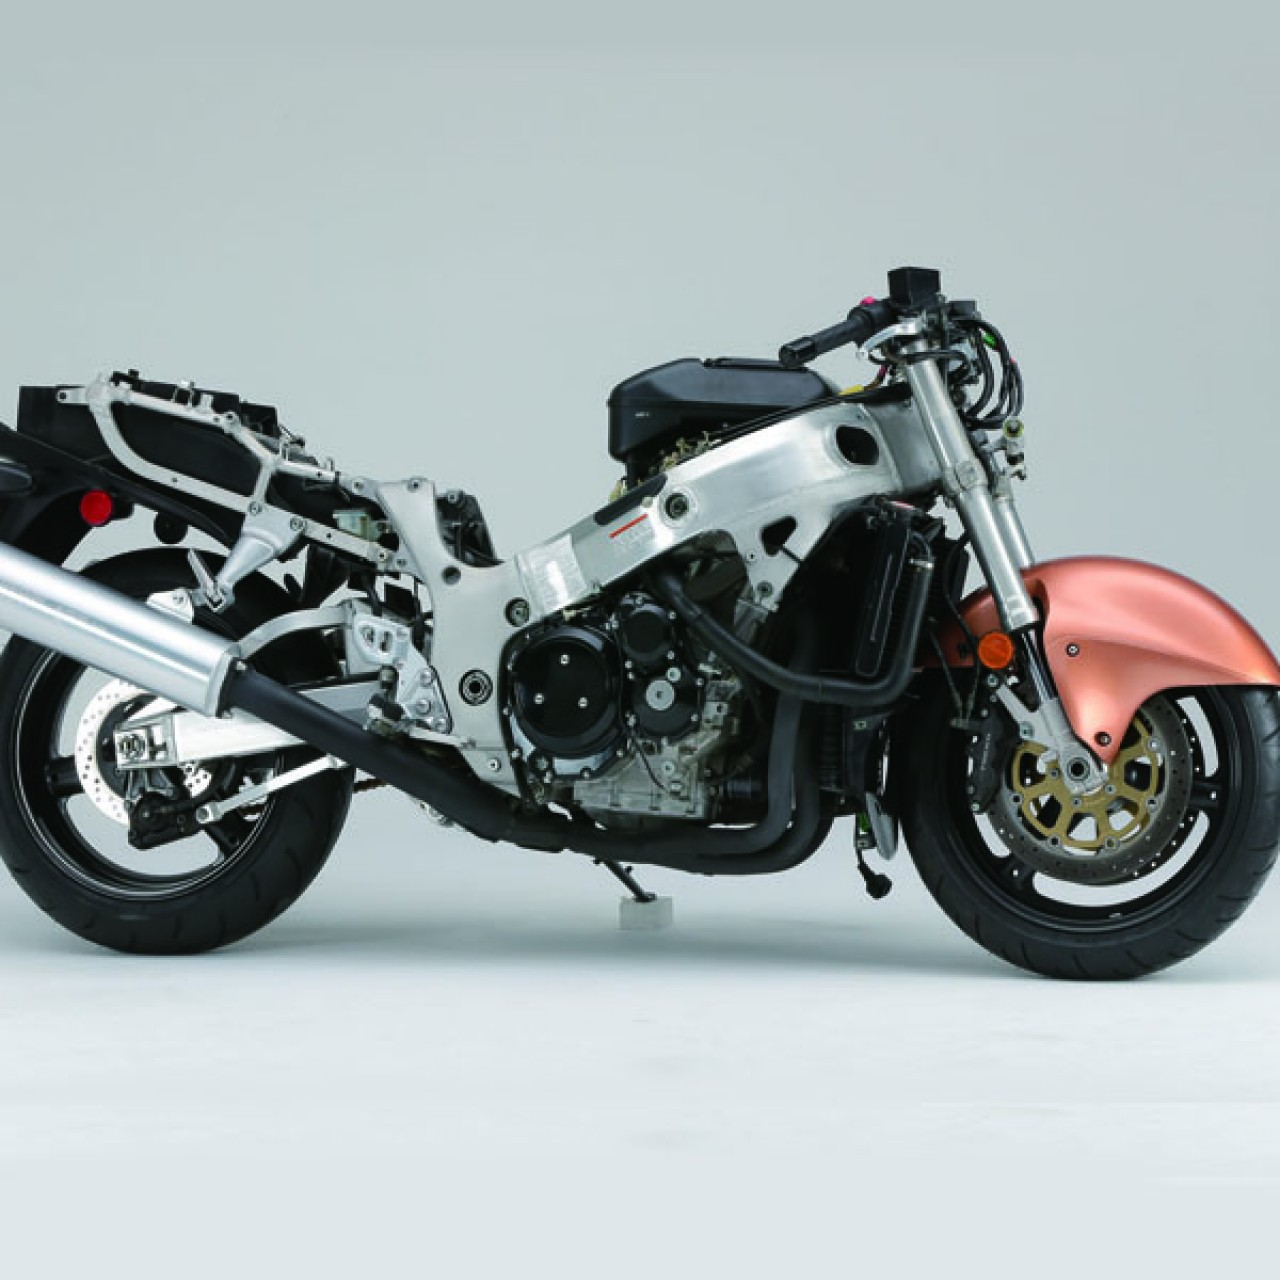 Suzuki Hayabusa GSX1300R | 1:4 Model Bike | Full Kit | ModelSpace